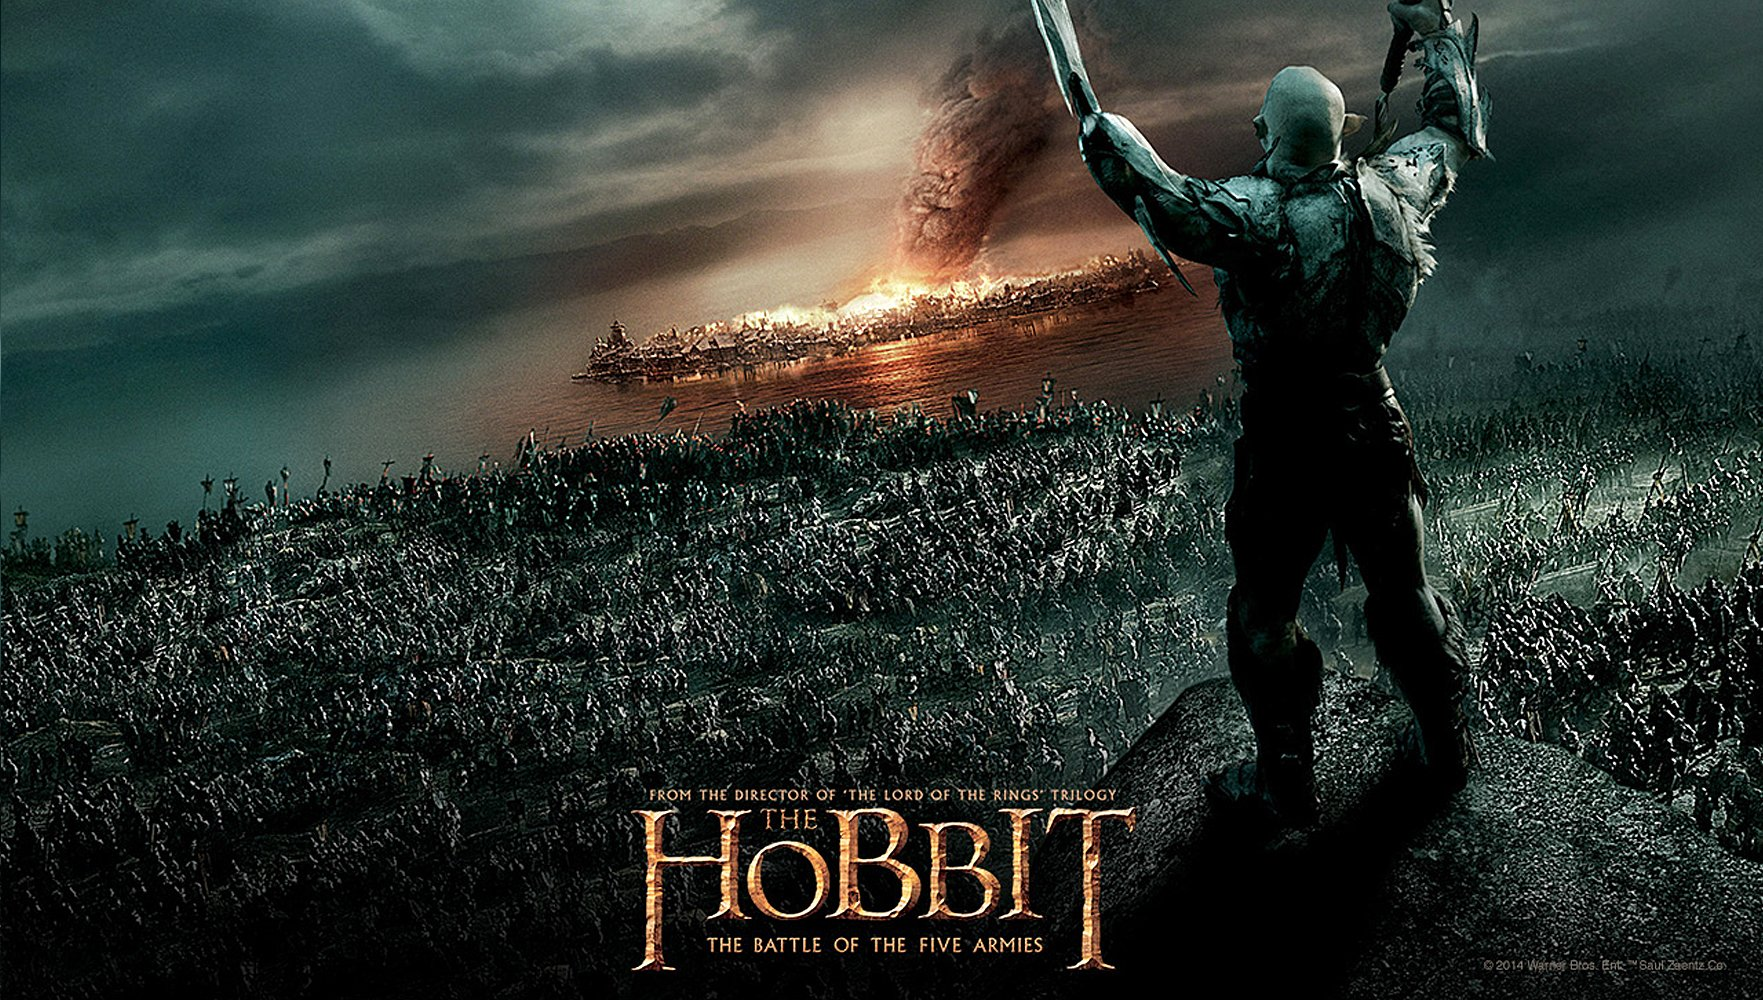 The Hobbit + The Lord of the Rings - Critique des films de Peter Jackson